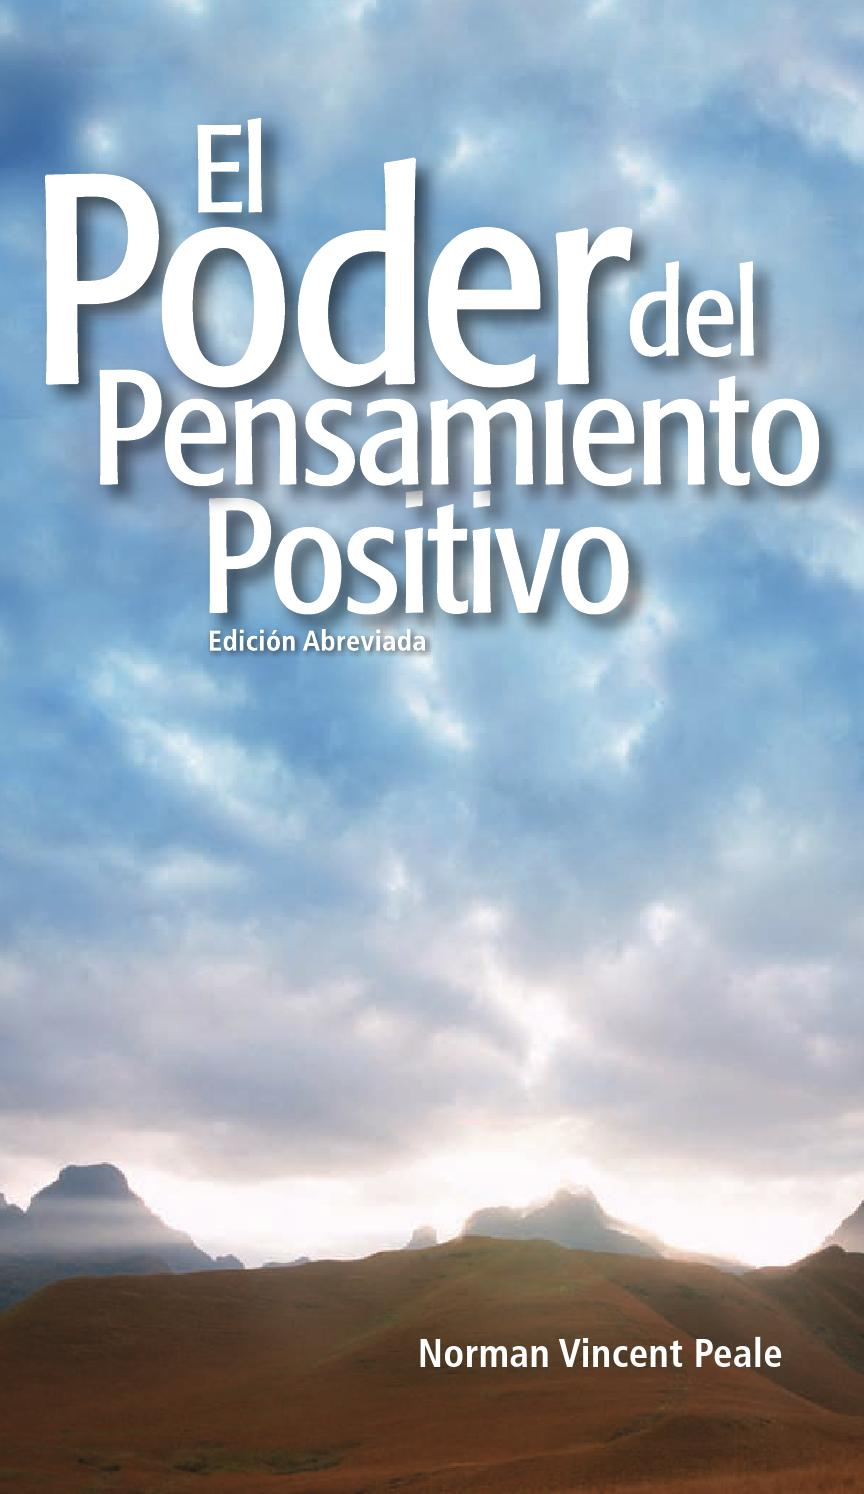 El poder del pensamiento tenaz by Richard Barbosa - Issuu